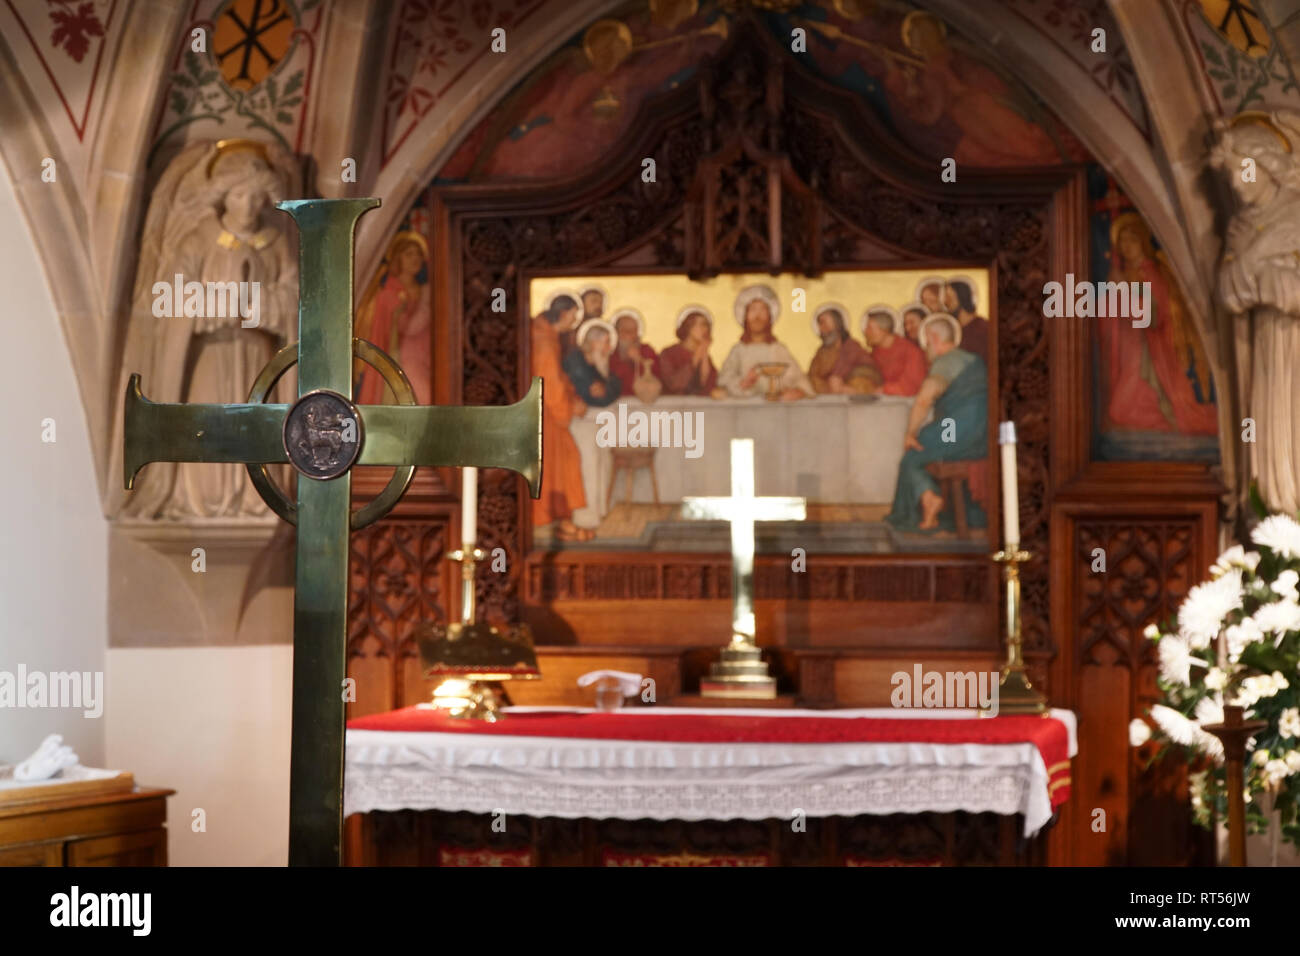 High altar in a church with large brass cross in the foreground - Stock Image